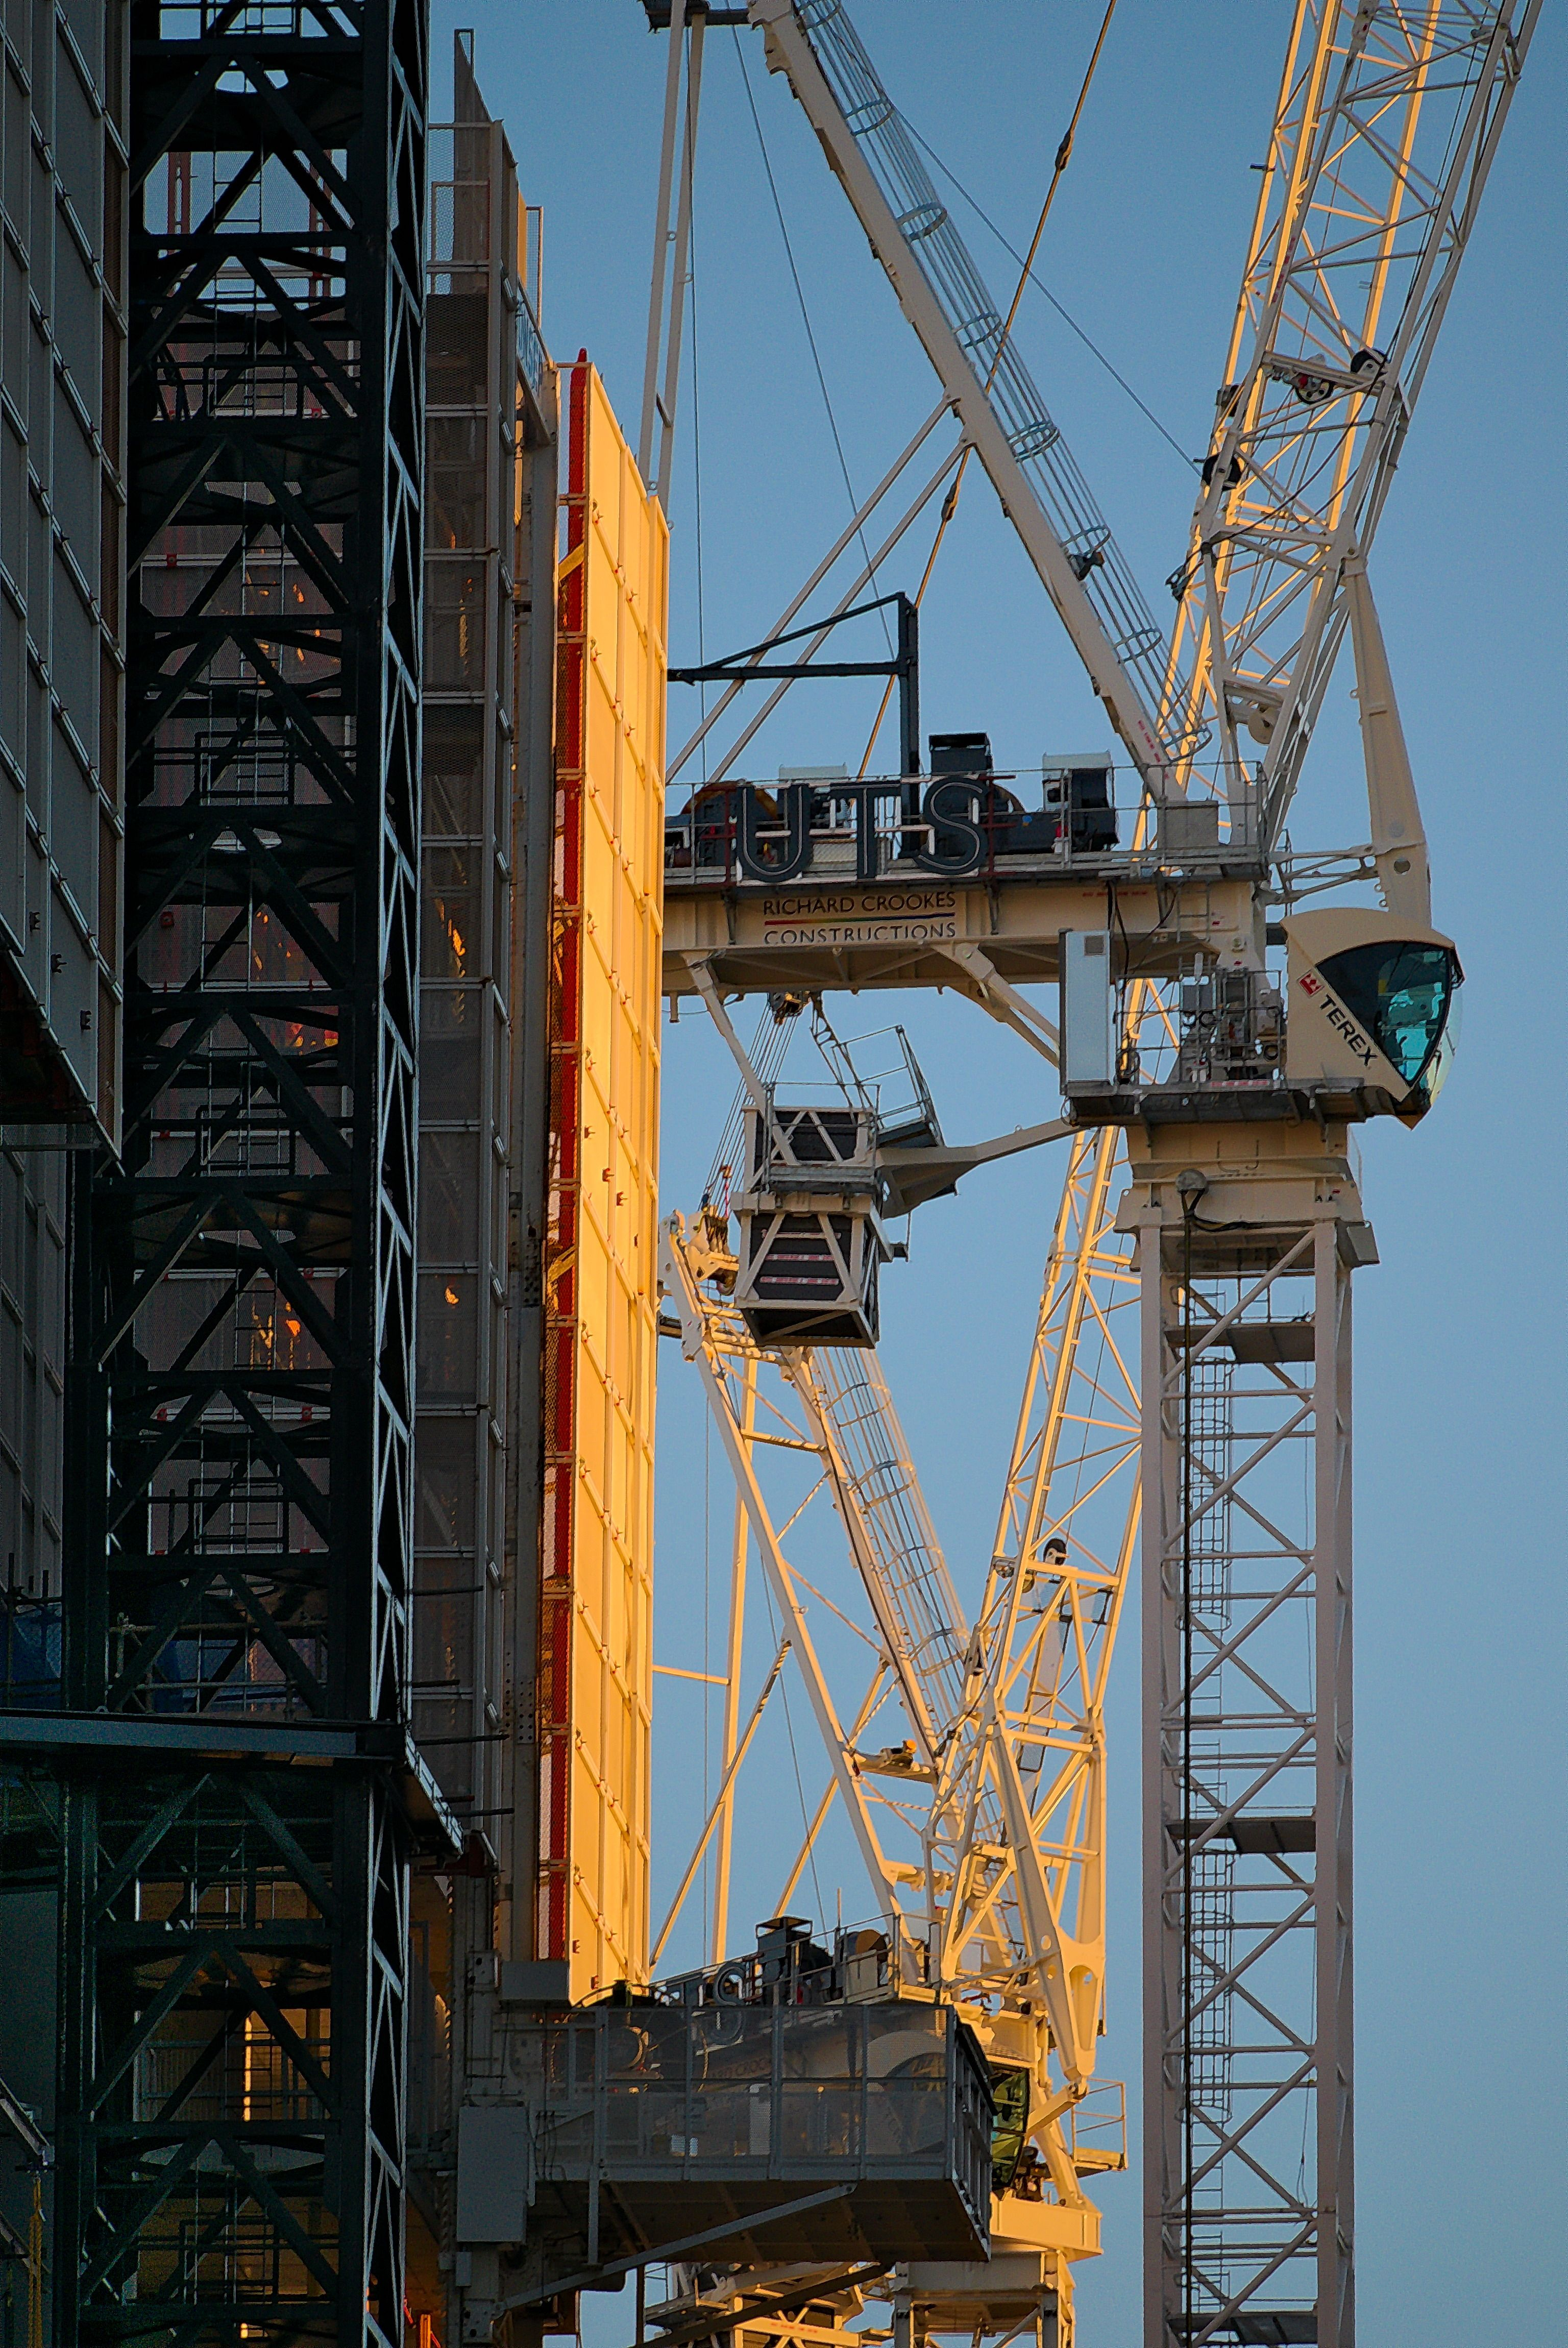 these luffing cranes are on a richards crooks site looking from rh pinterest com Terex Cranes Wind Chart Terex Cranes Wind Chart